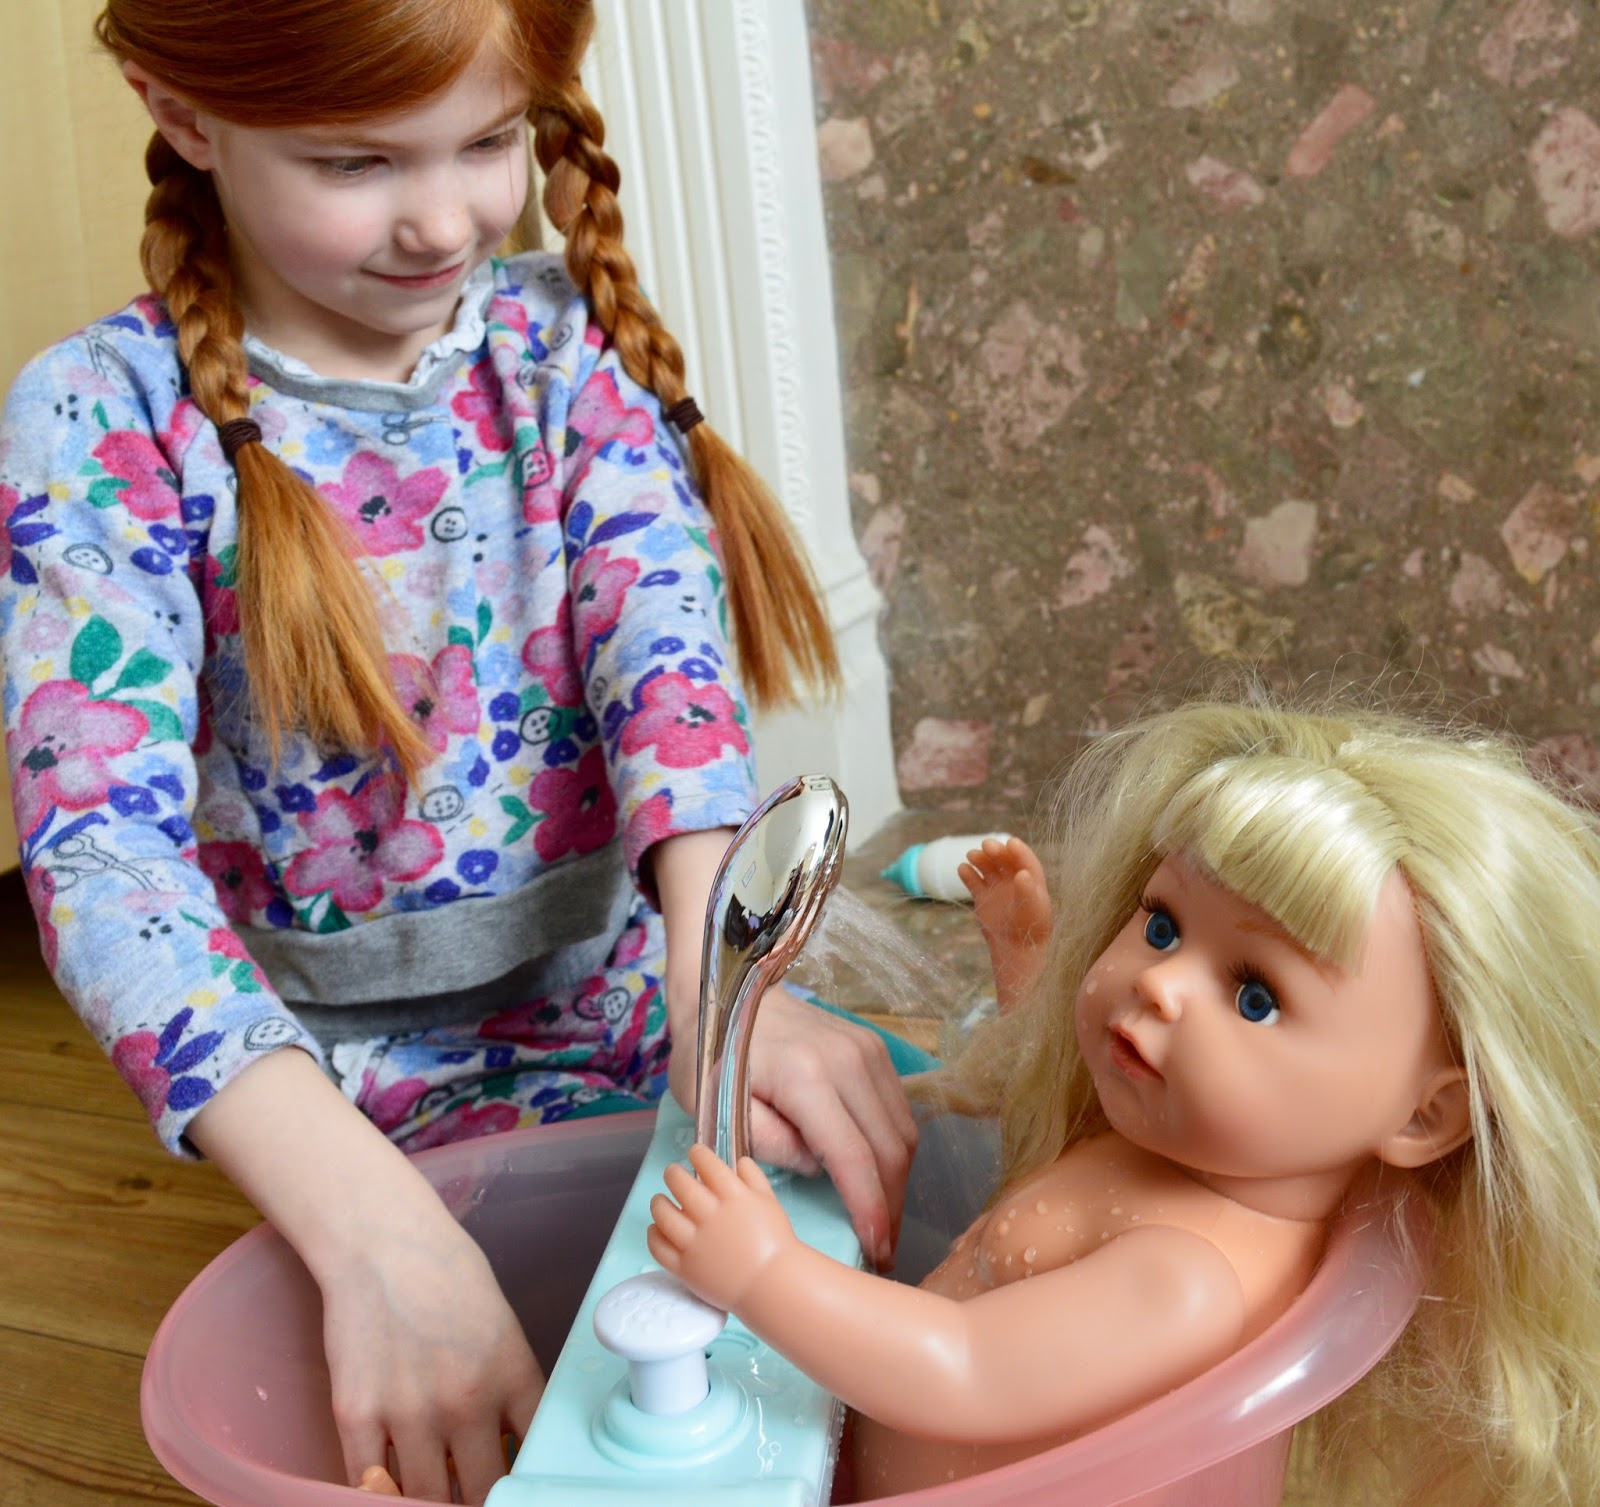 BABY Born Interactive bathtub with foam - instructions and review - Heidi bathing her BABY born doll